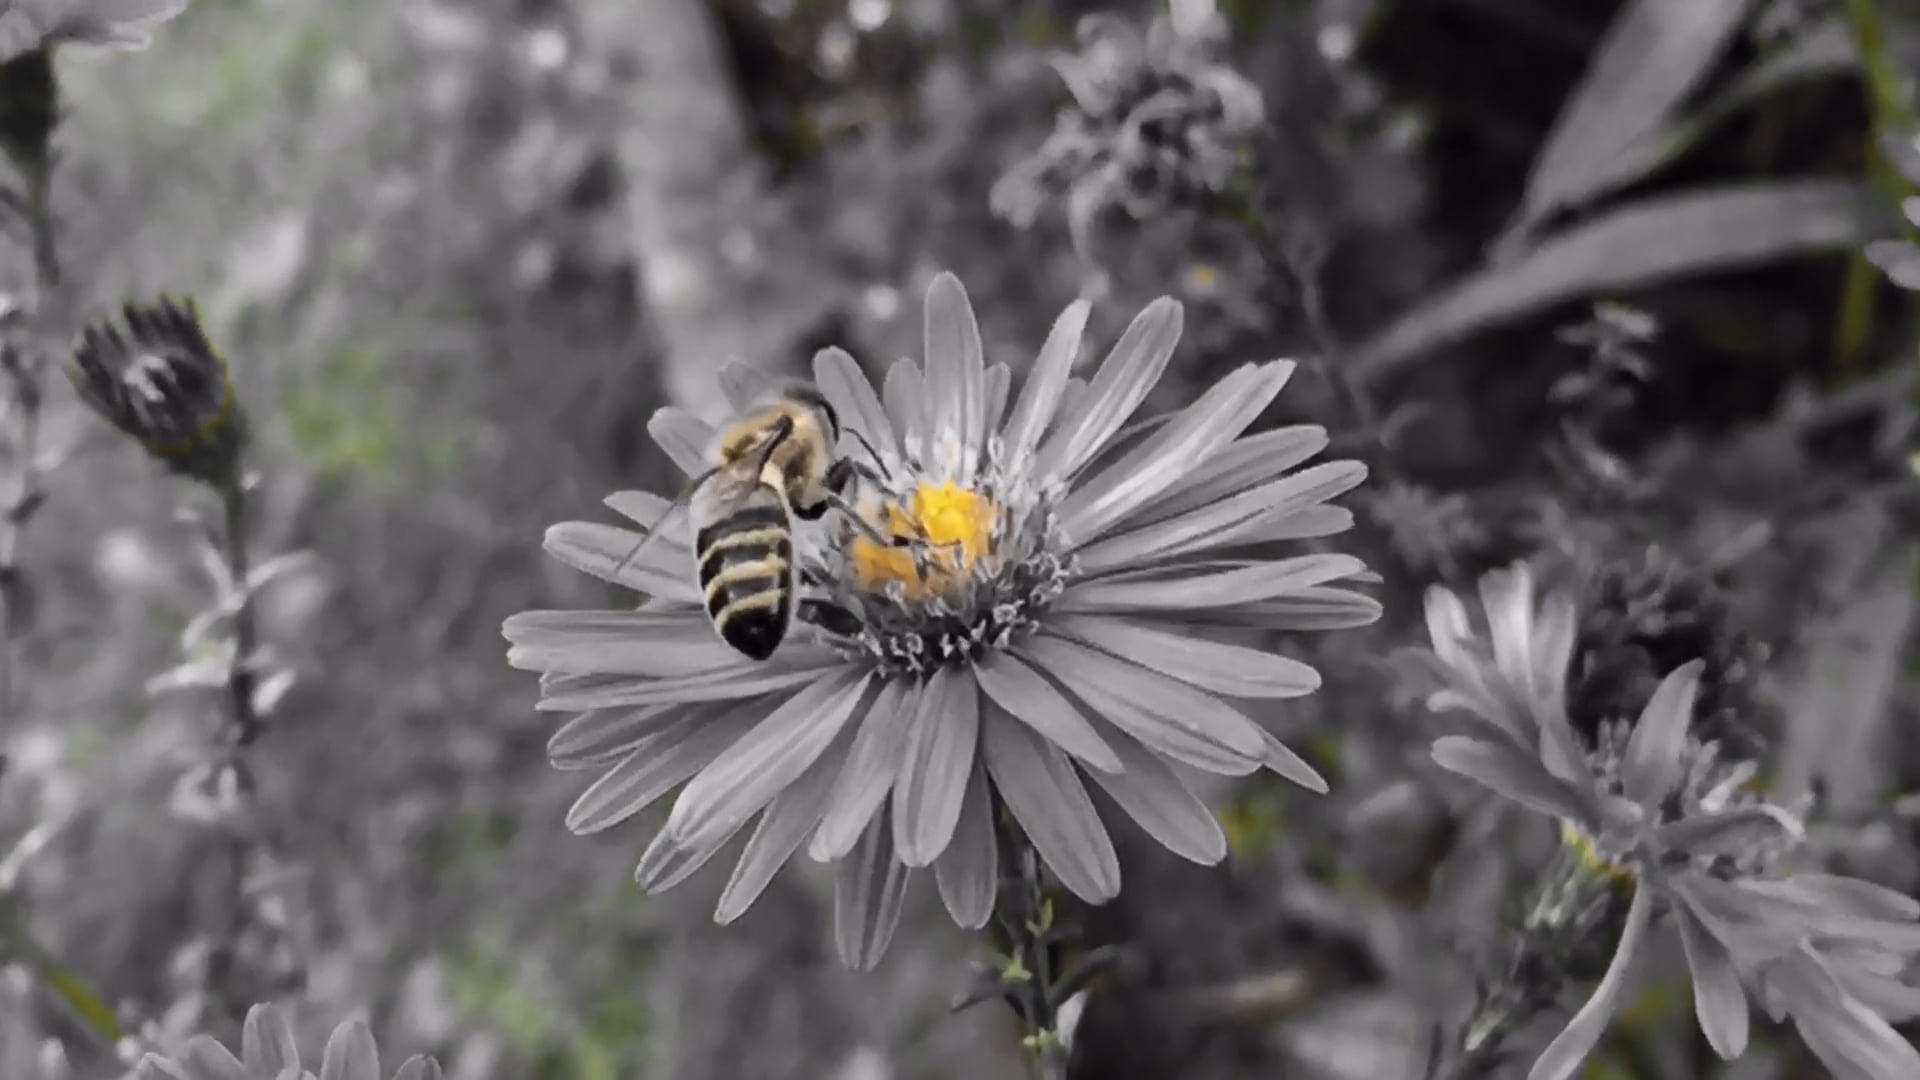 Black And White Video Of Bee Pollination